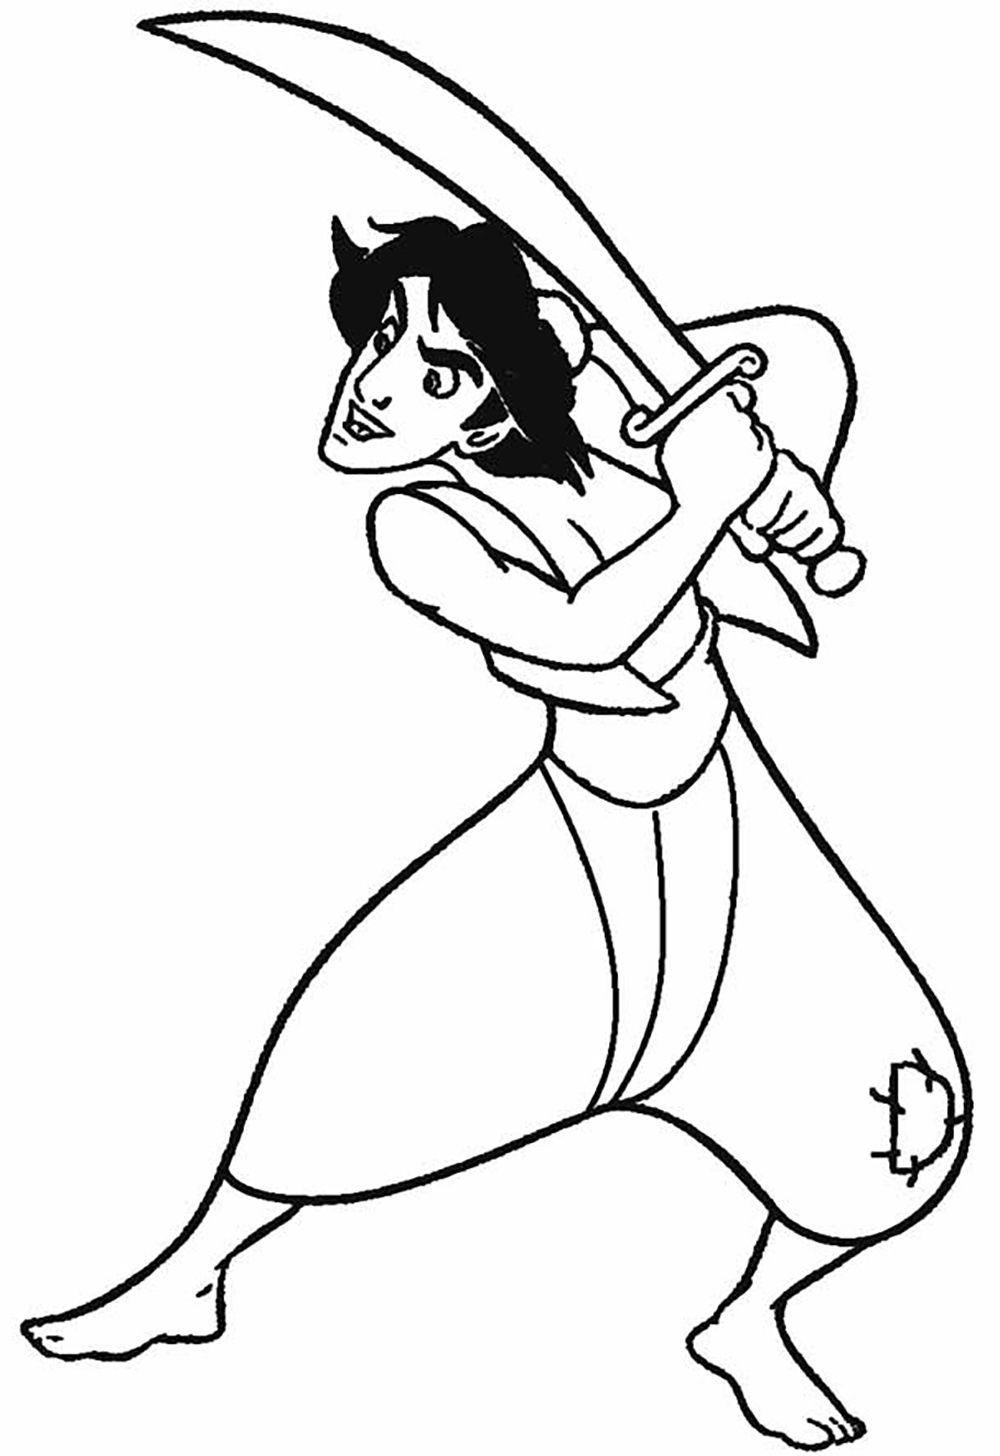 Aladdin Fighting With Swords